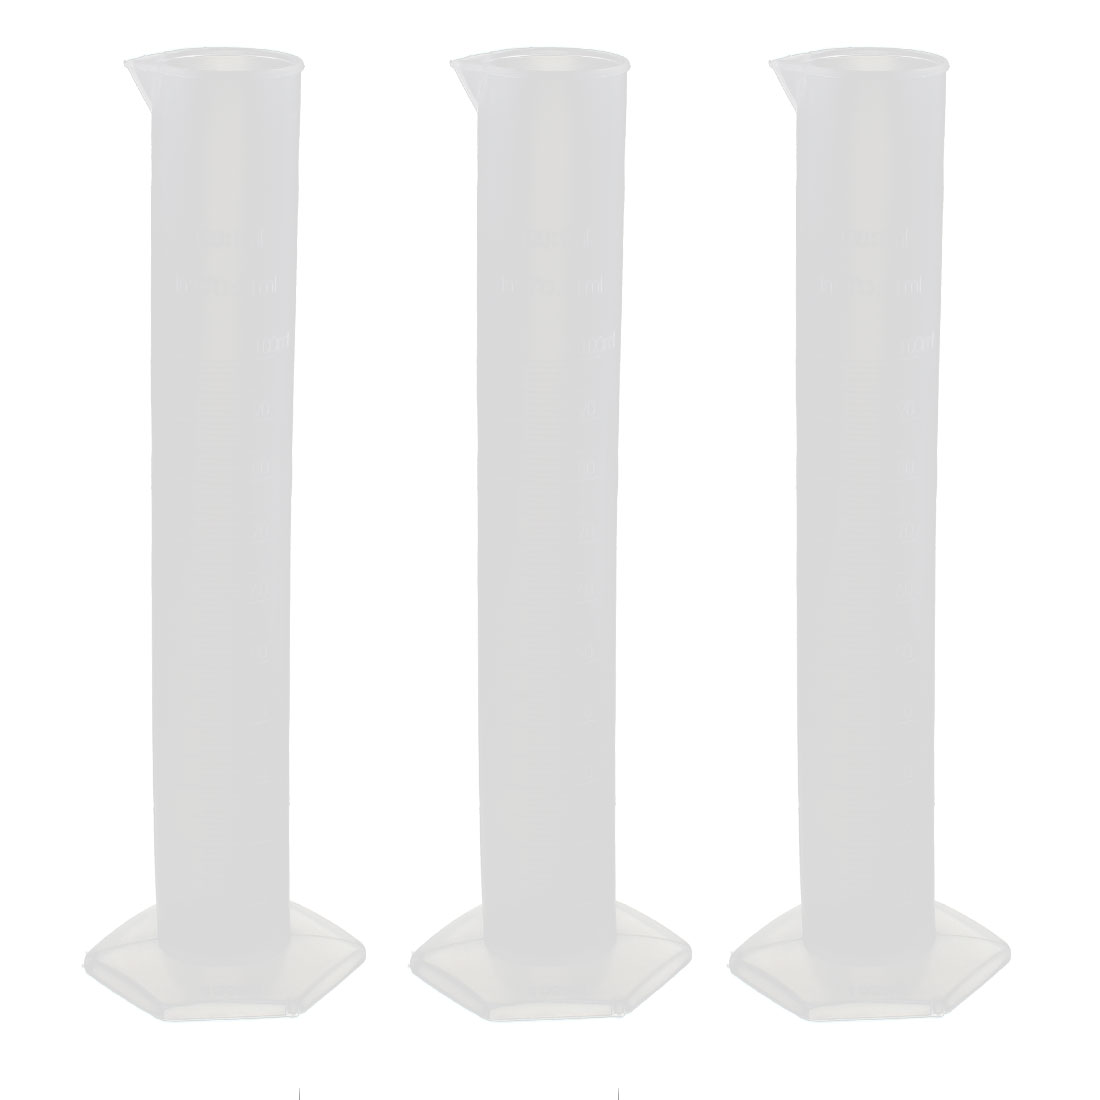 Plastic Cylinder Lab Liquid Container Graduated Measuring Beaker Cup 100mL 3 Pcs